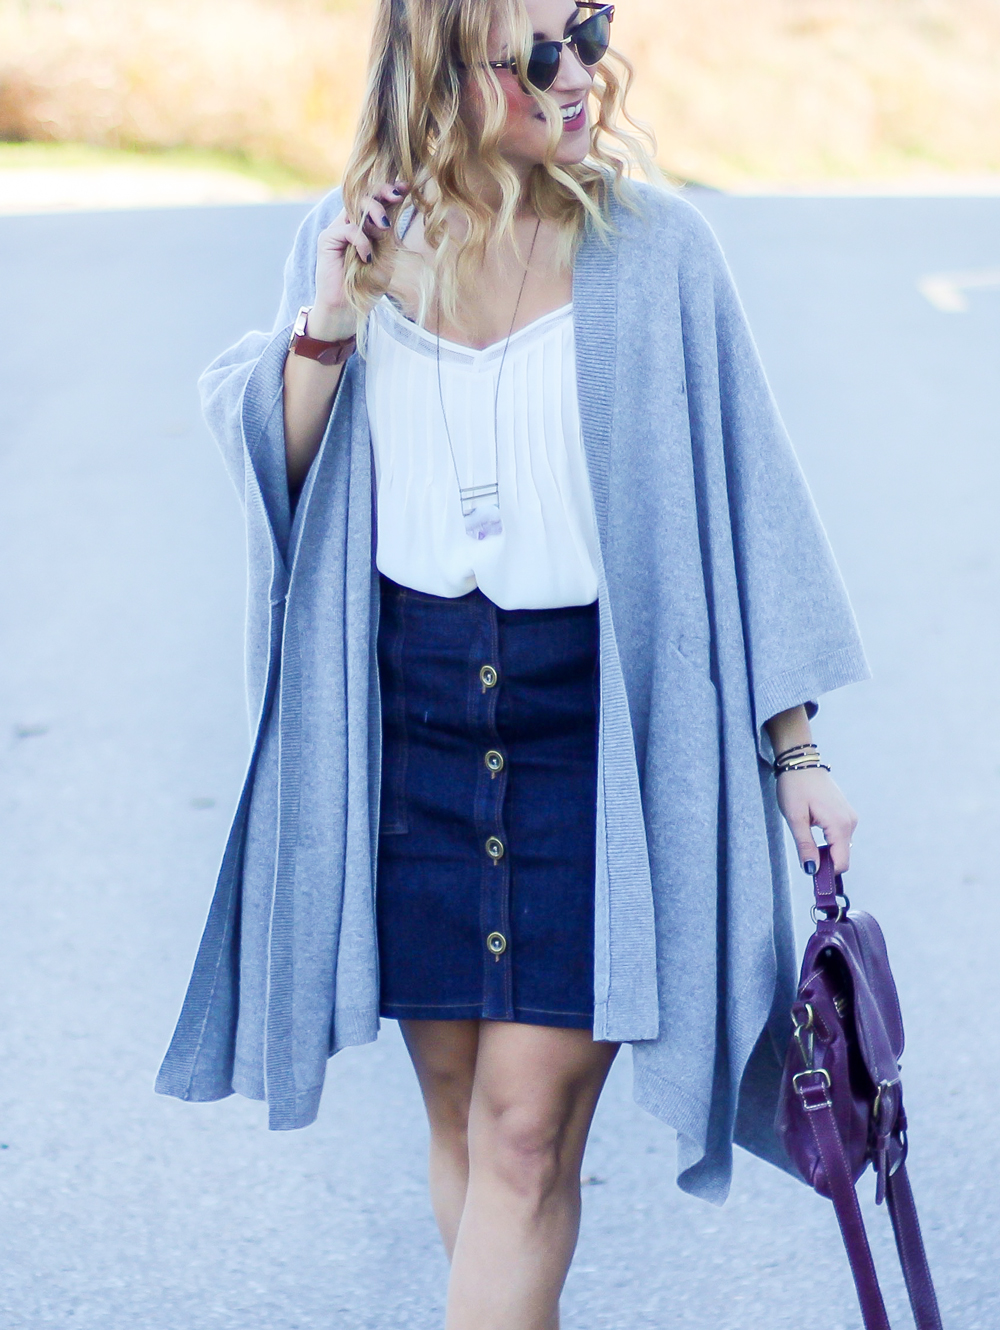 Fall outfit idea, featuring a denim skirt from Banana Republic and poncho from Aritzia, seen on Toronto fashion and lifestyle blogger, Jackie Goldhar, from Something About That